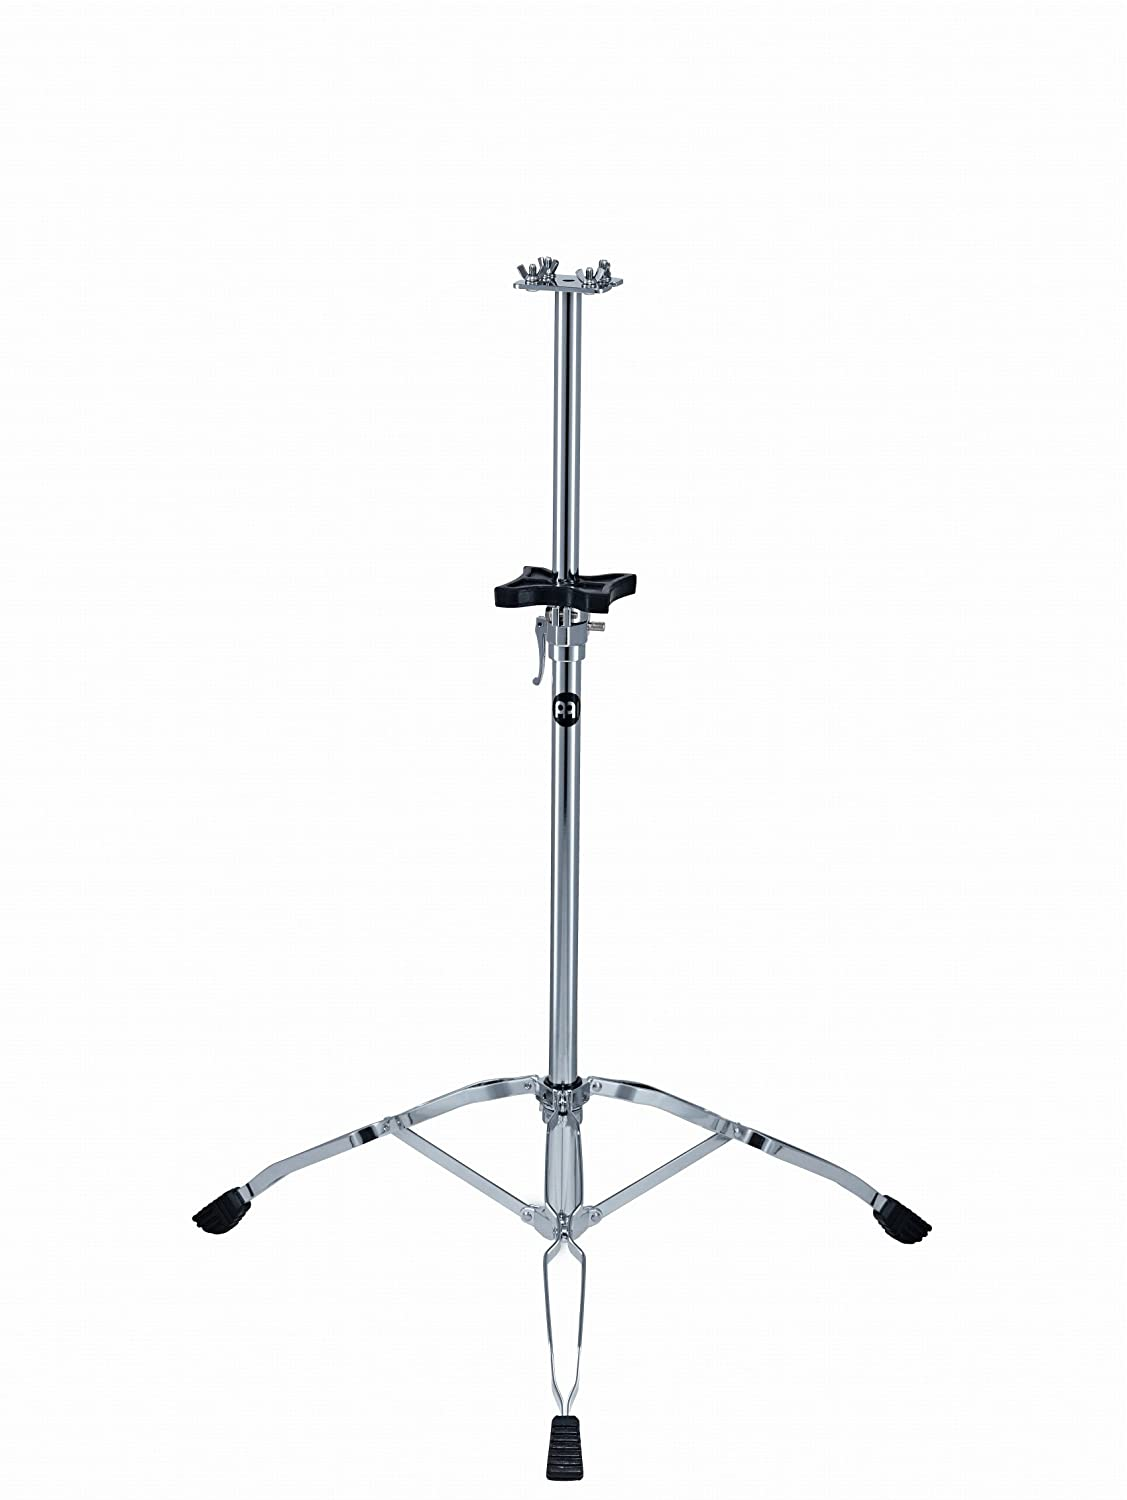 Meinl Percussion TMDS Double Braced Tripod Stand for MEINL Professional Congas, Chrome Meinl USA L.C.